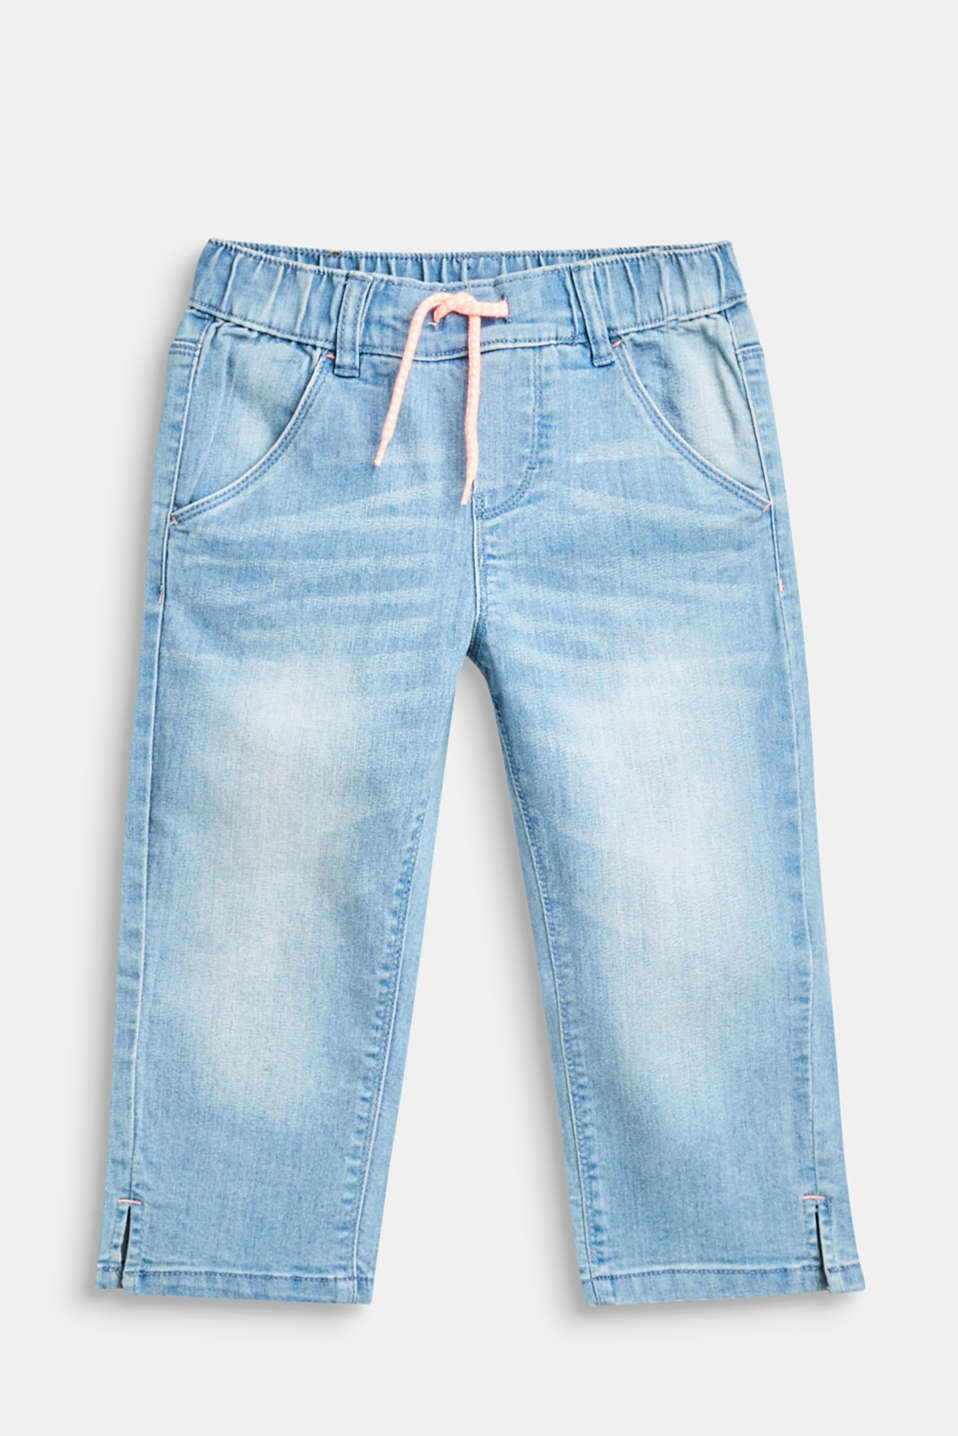 Esprit - 7/8-length casual stretch jeans